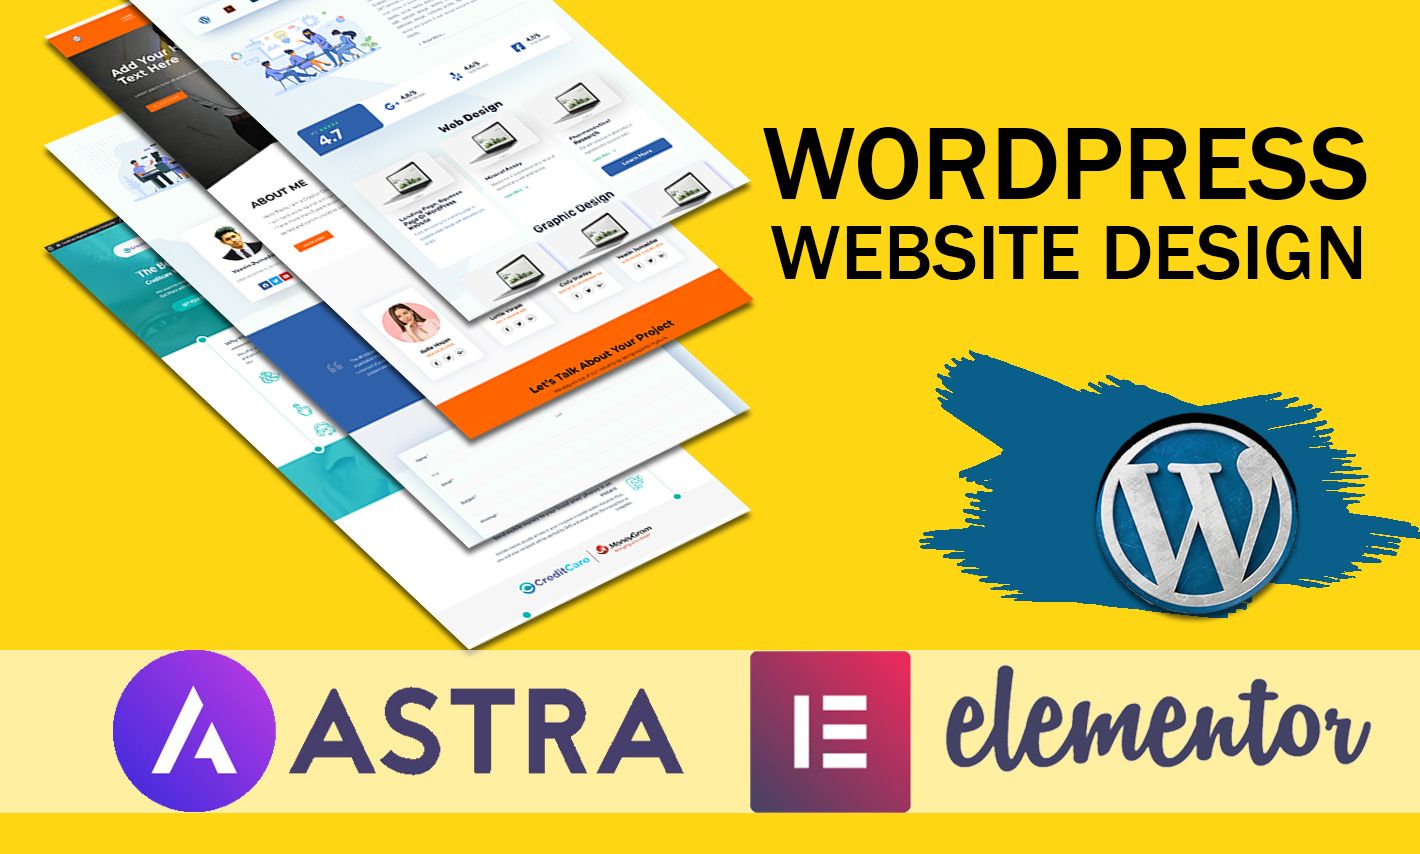 I will install and design elementor pro,  astra agency,  crocoblock,  wordpress website